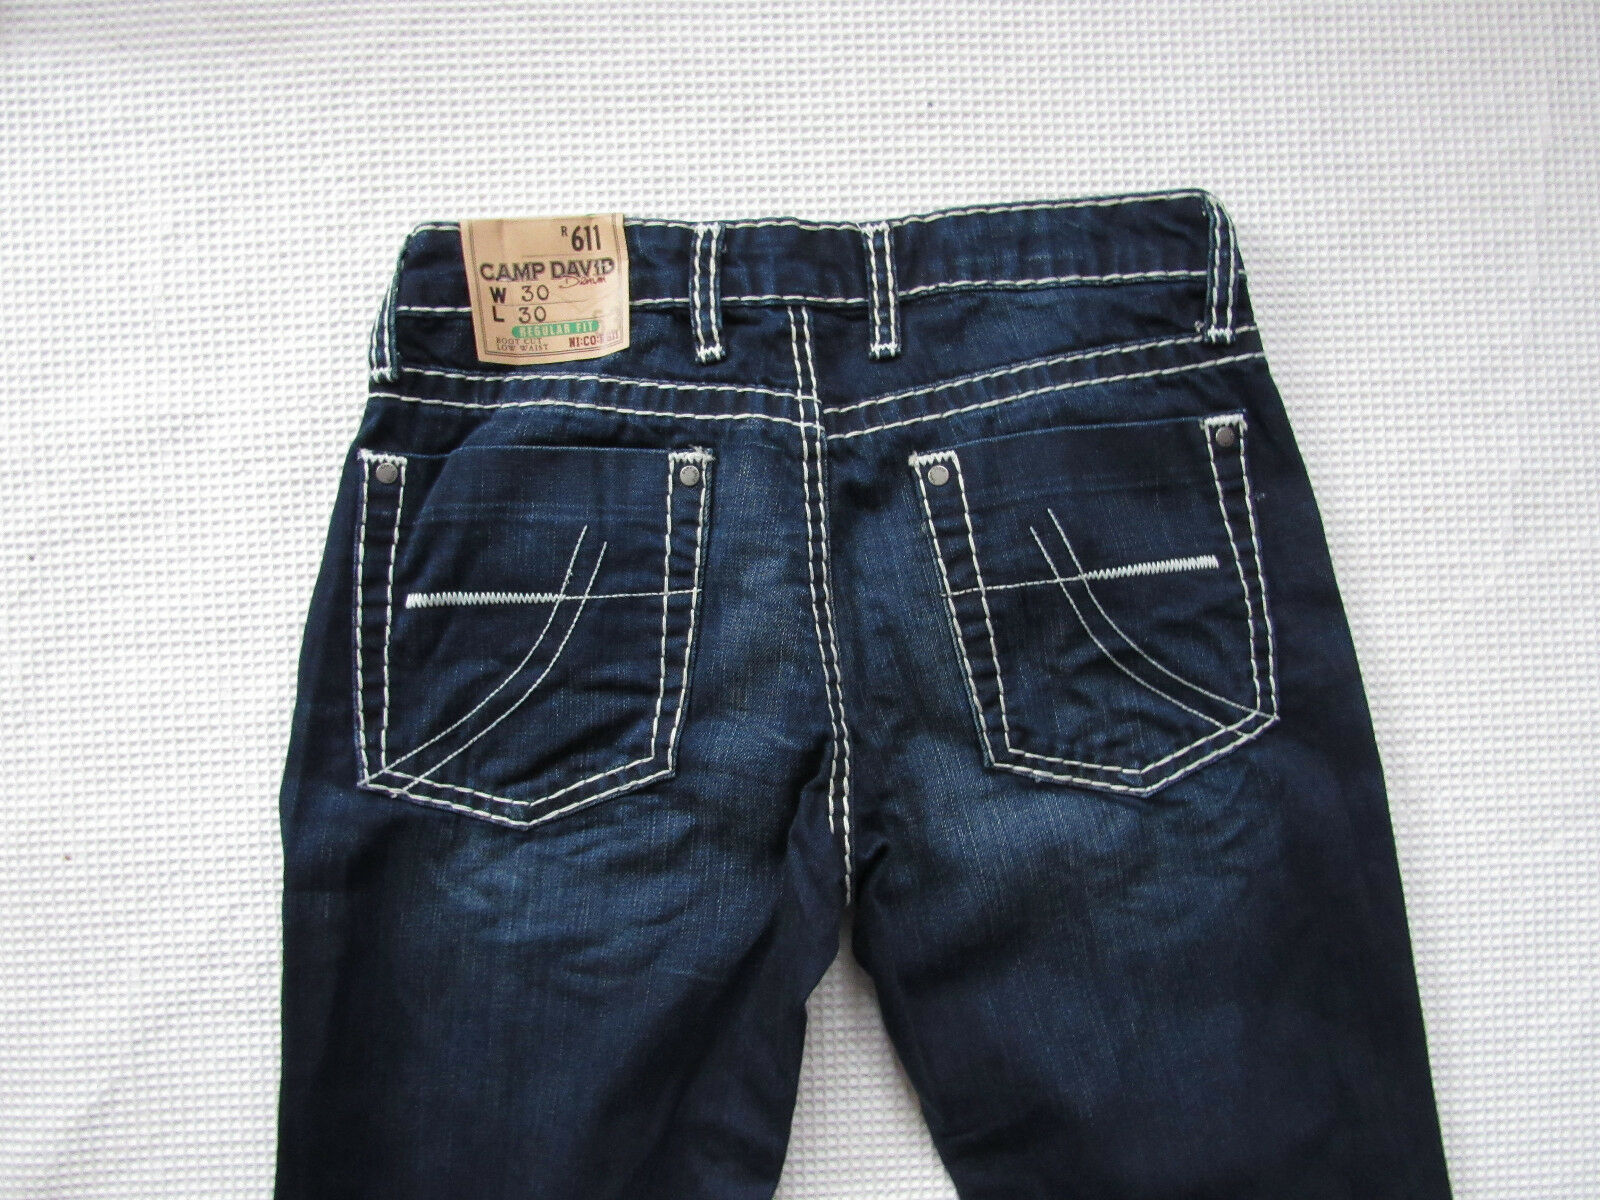 100% Camp David Herren Jeans Denim CD H W Blau used W31 L32